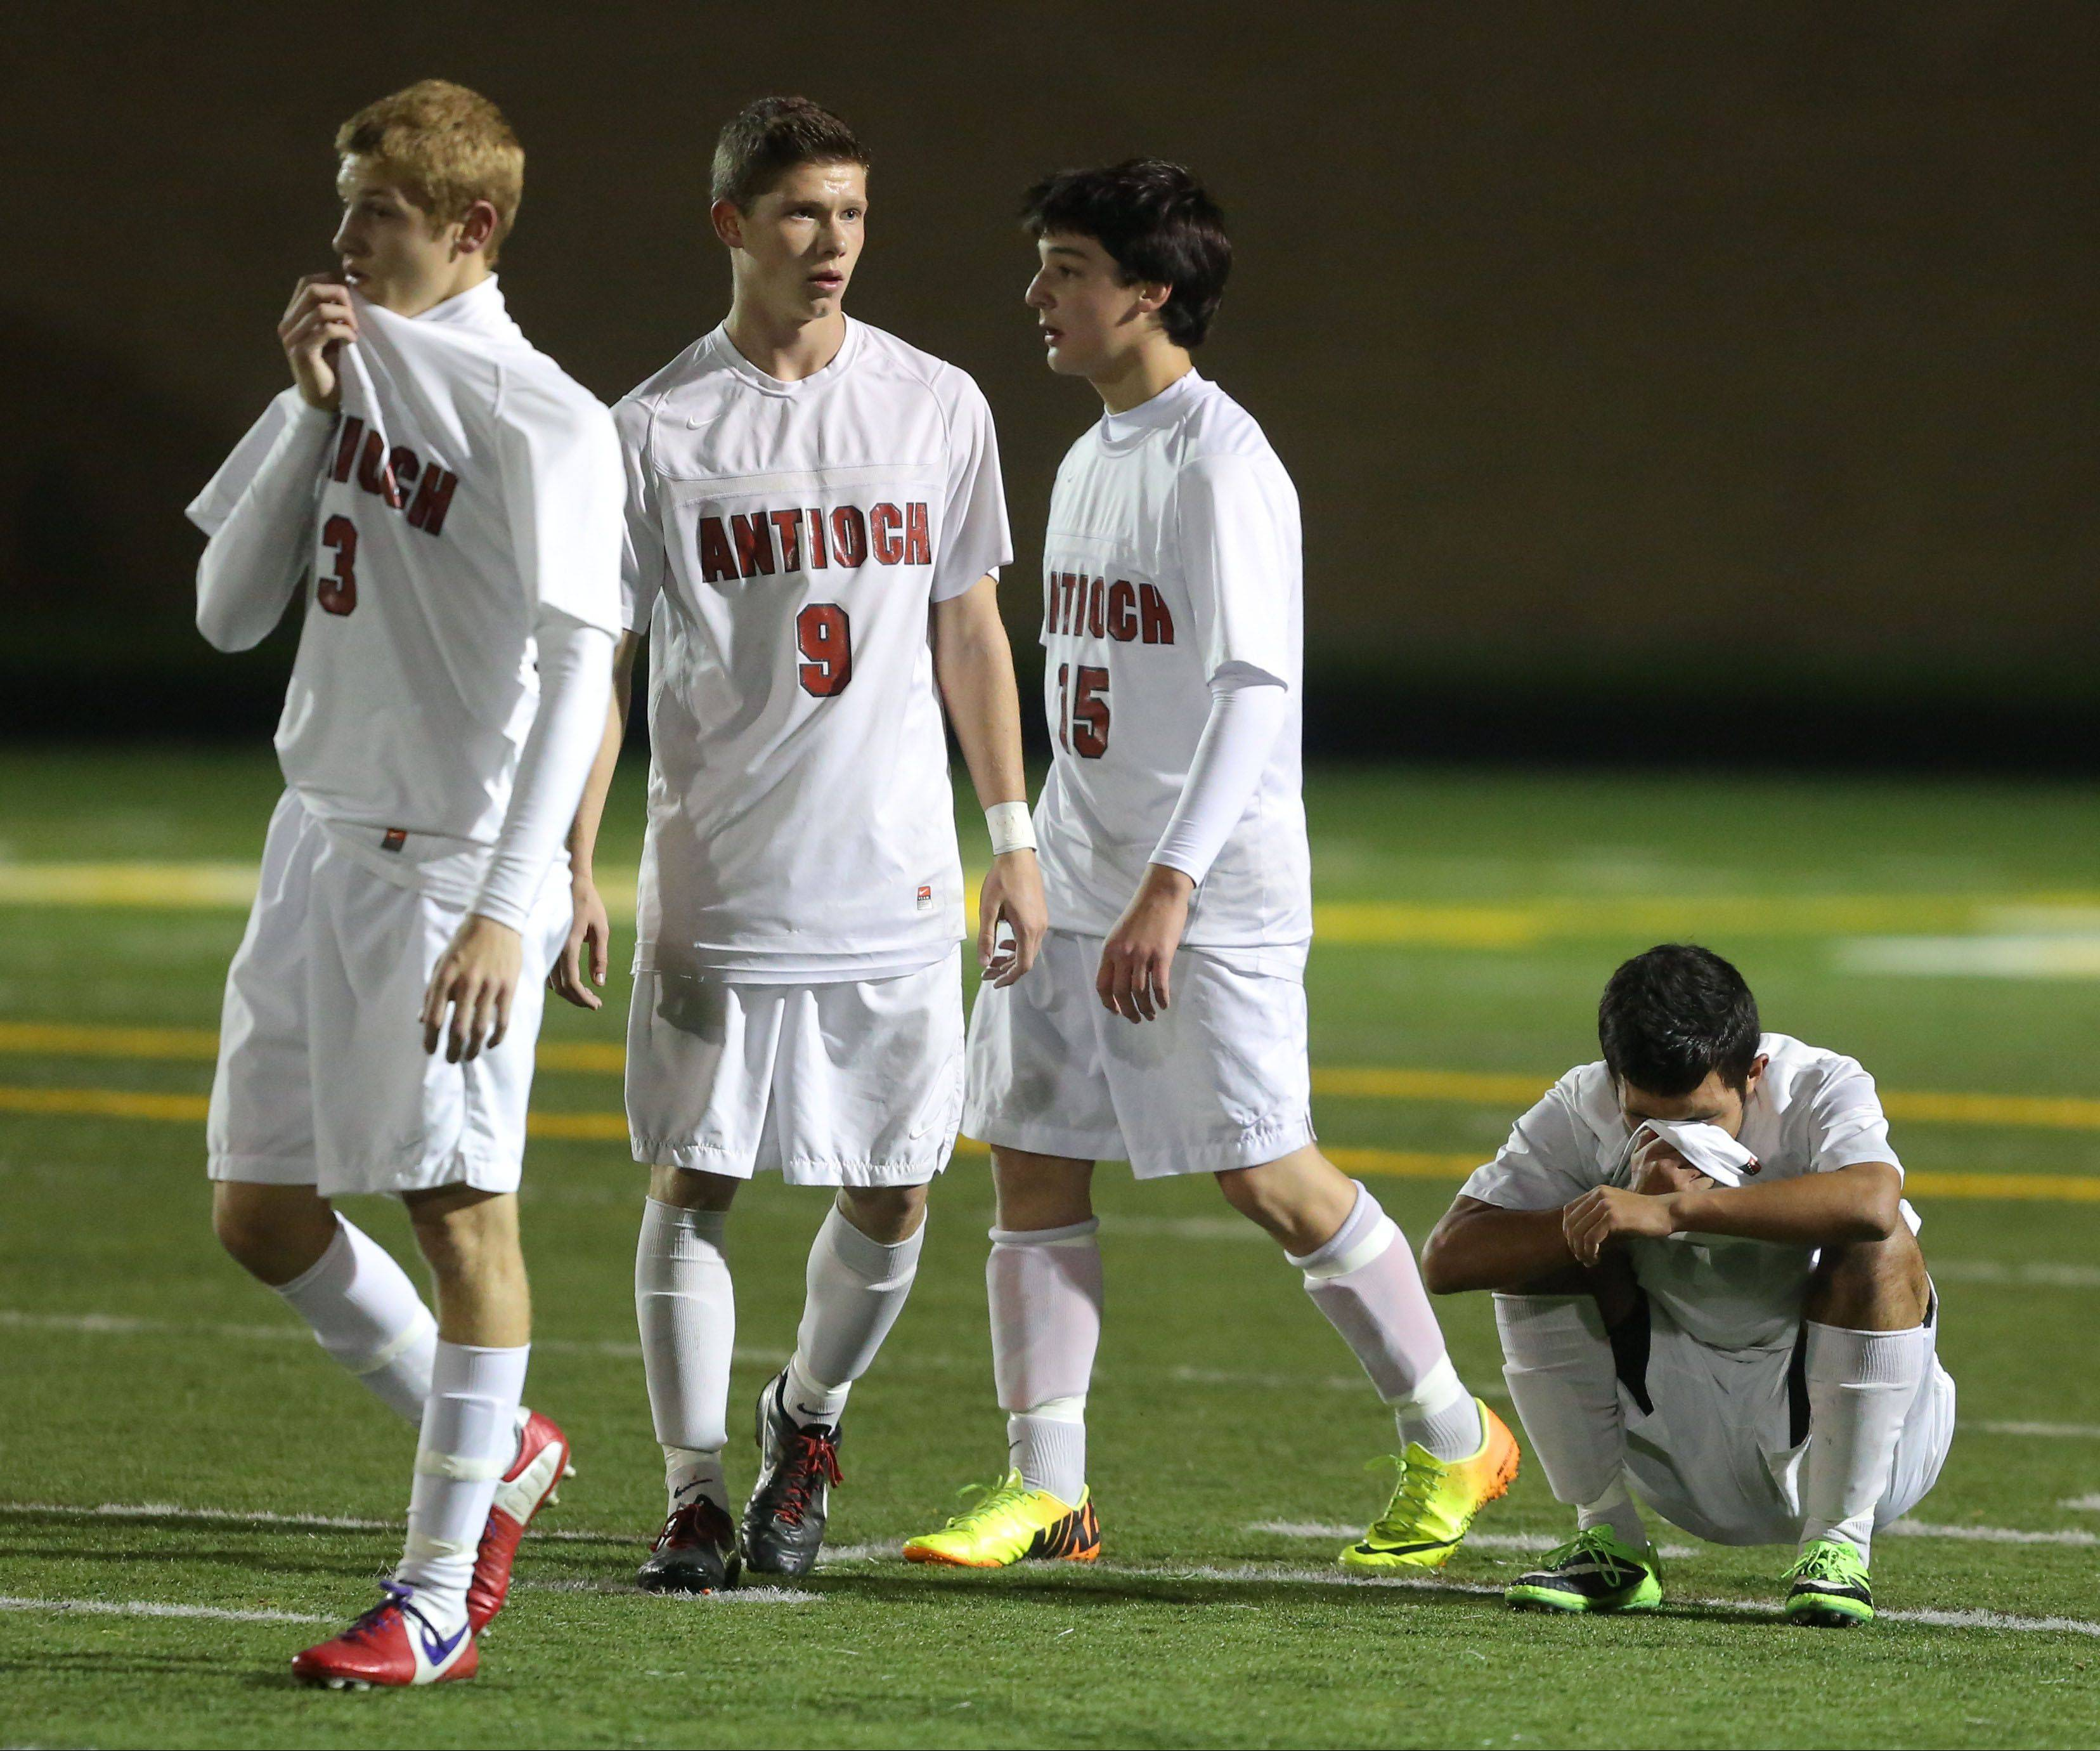 From left, Antioch's Danny Brito, Krystian Streit, Danny Lonski and Iven Hernandez come to grips with a 1-0 loss to St. Ignatius in Class 2A supersectional play Tuesday night at Stevenson.